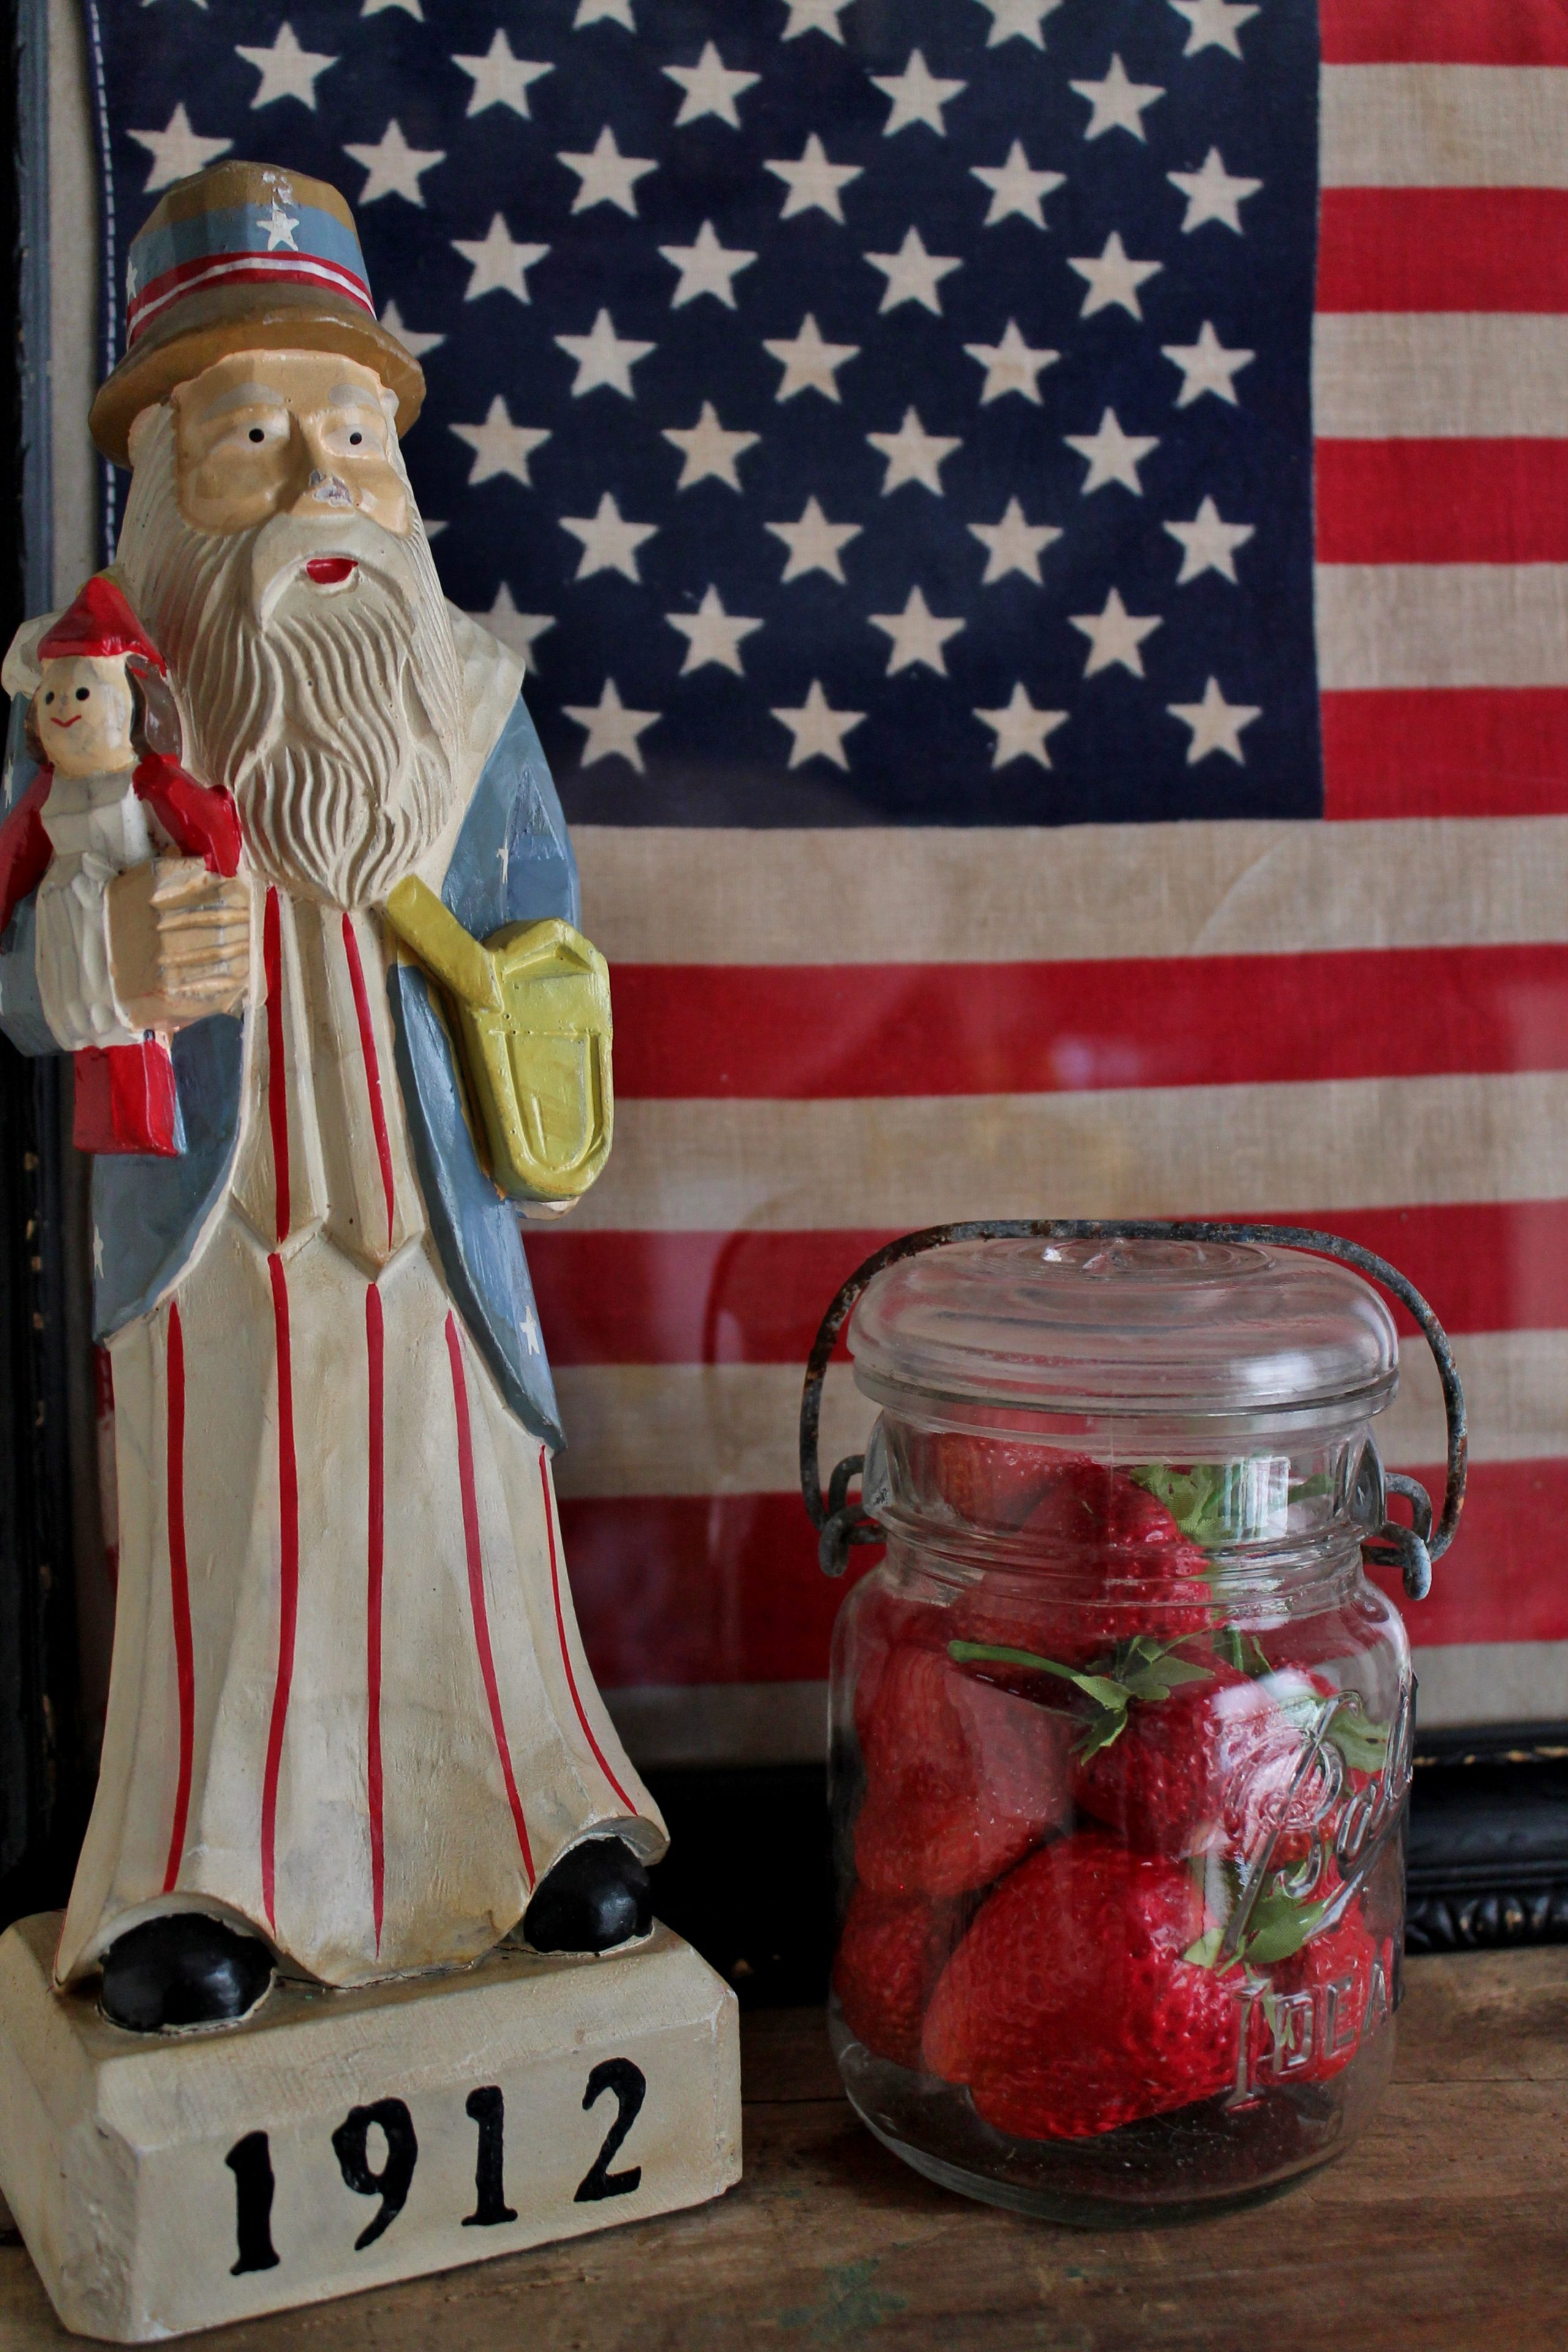 uncle-sam-and-strawberries-with-framed-vintage-flag